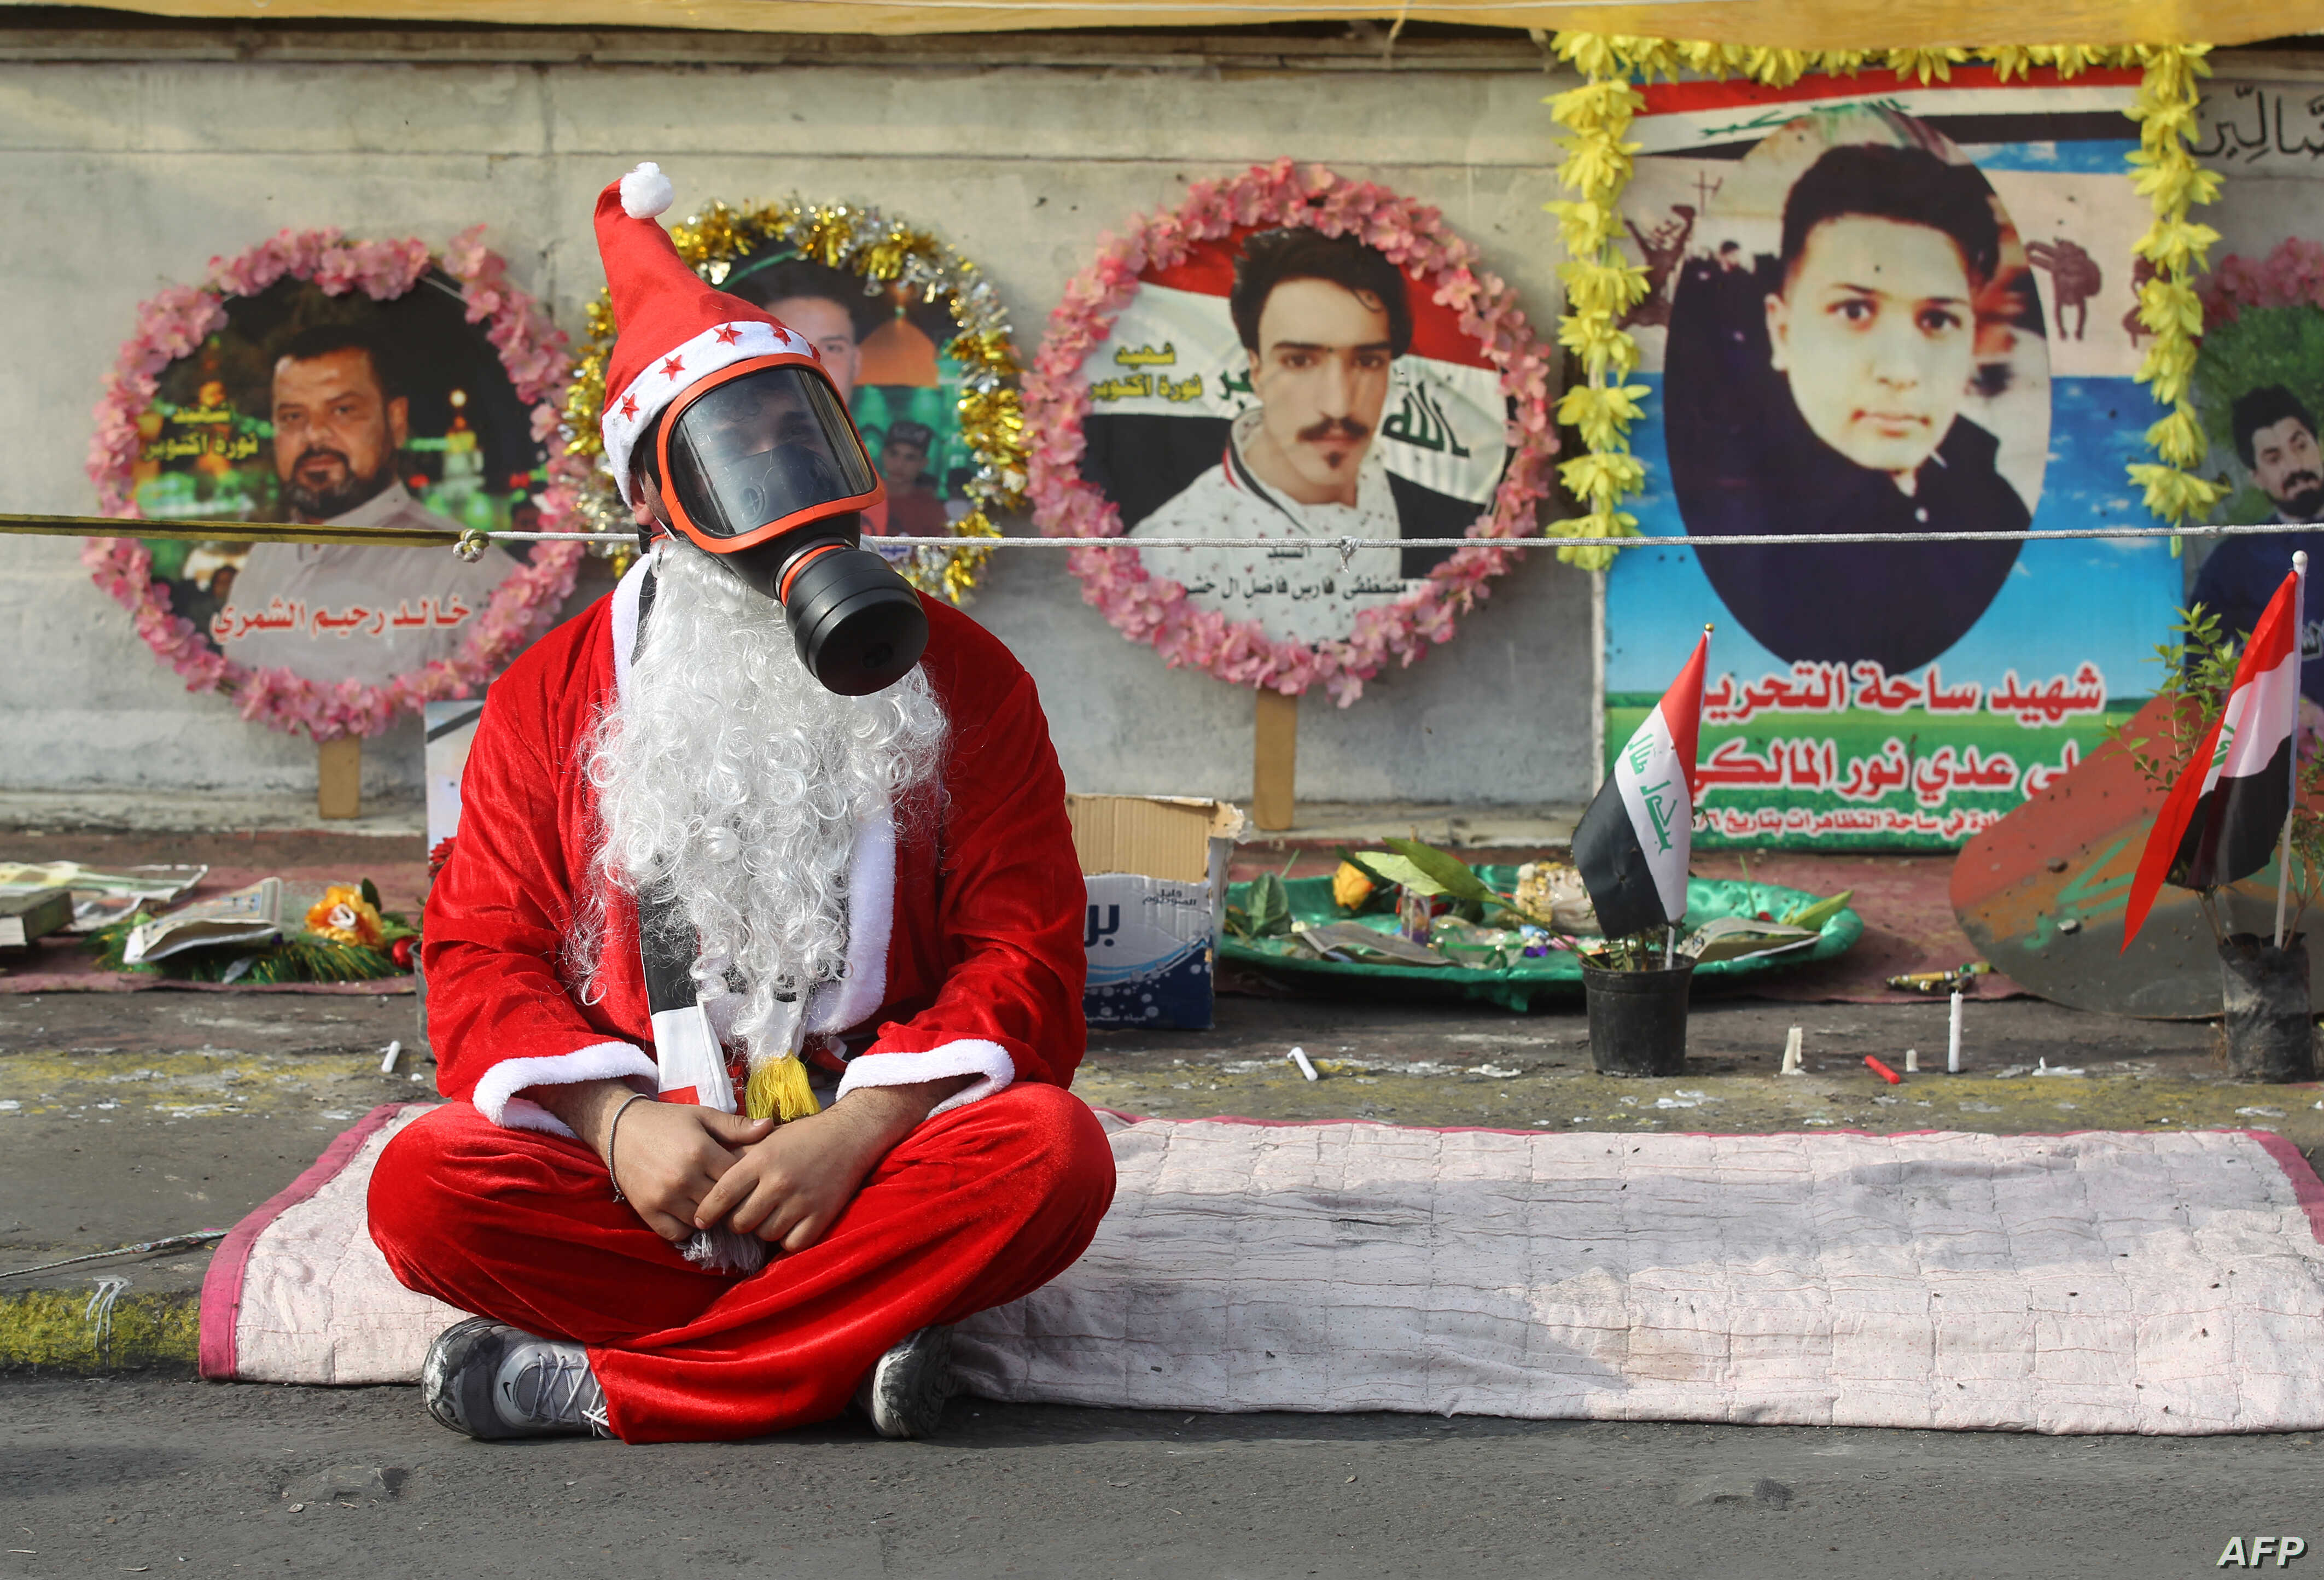 An Iraqi demonstrator wearing a Santa Claus costume and a gas mask sits on a blanket in the capital Baghdad's Tahrir Square, amid ongoing anti-government protests, Dec. 6, 2019.